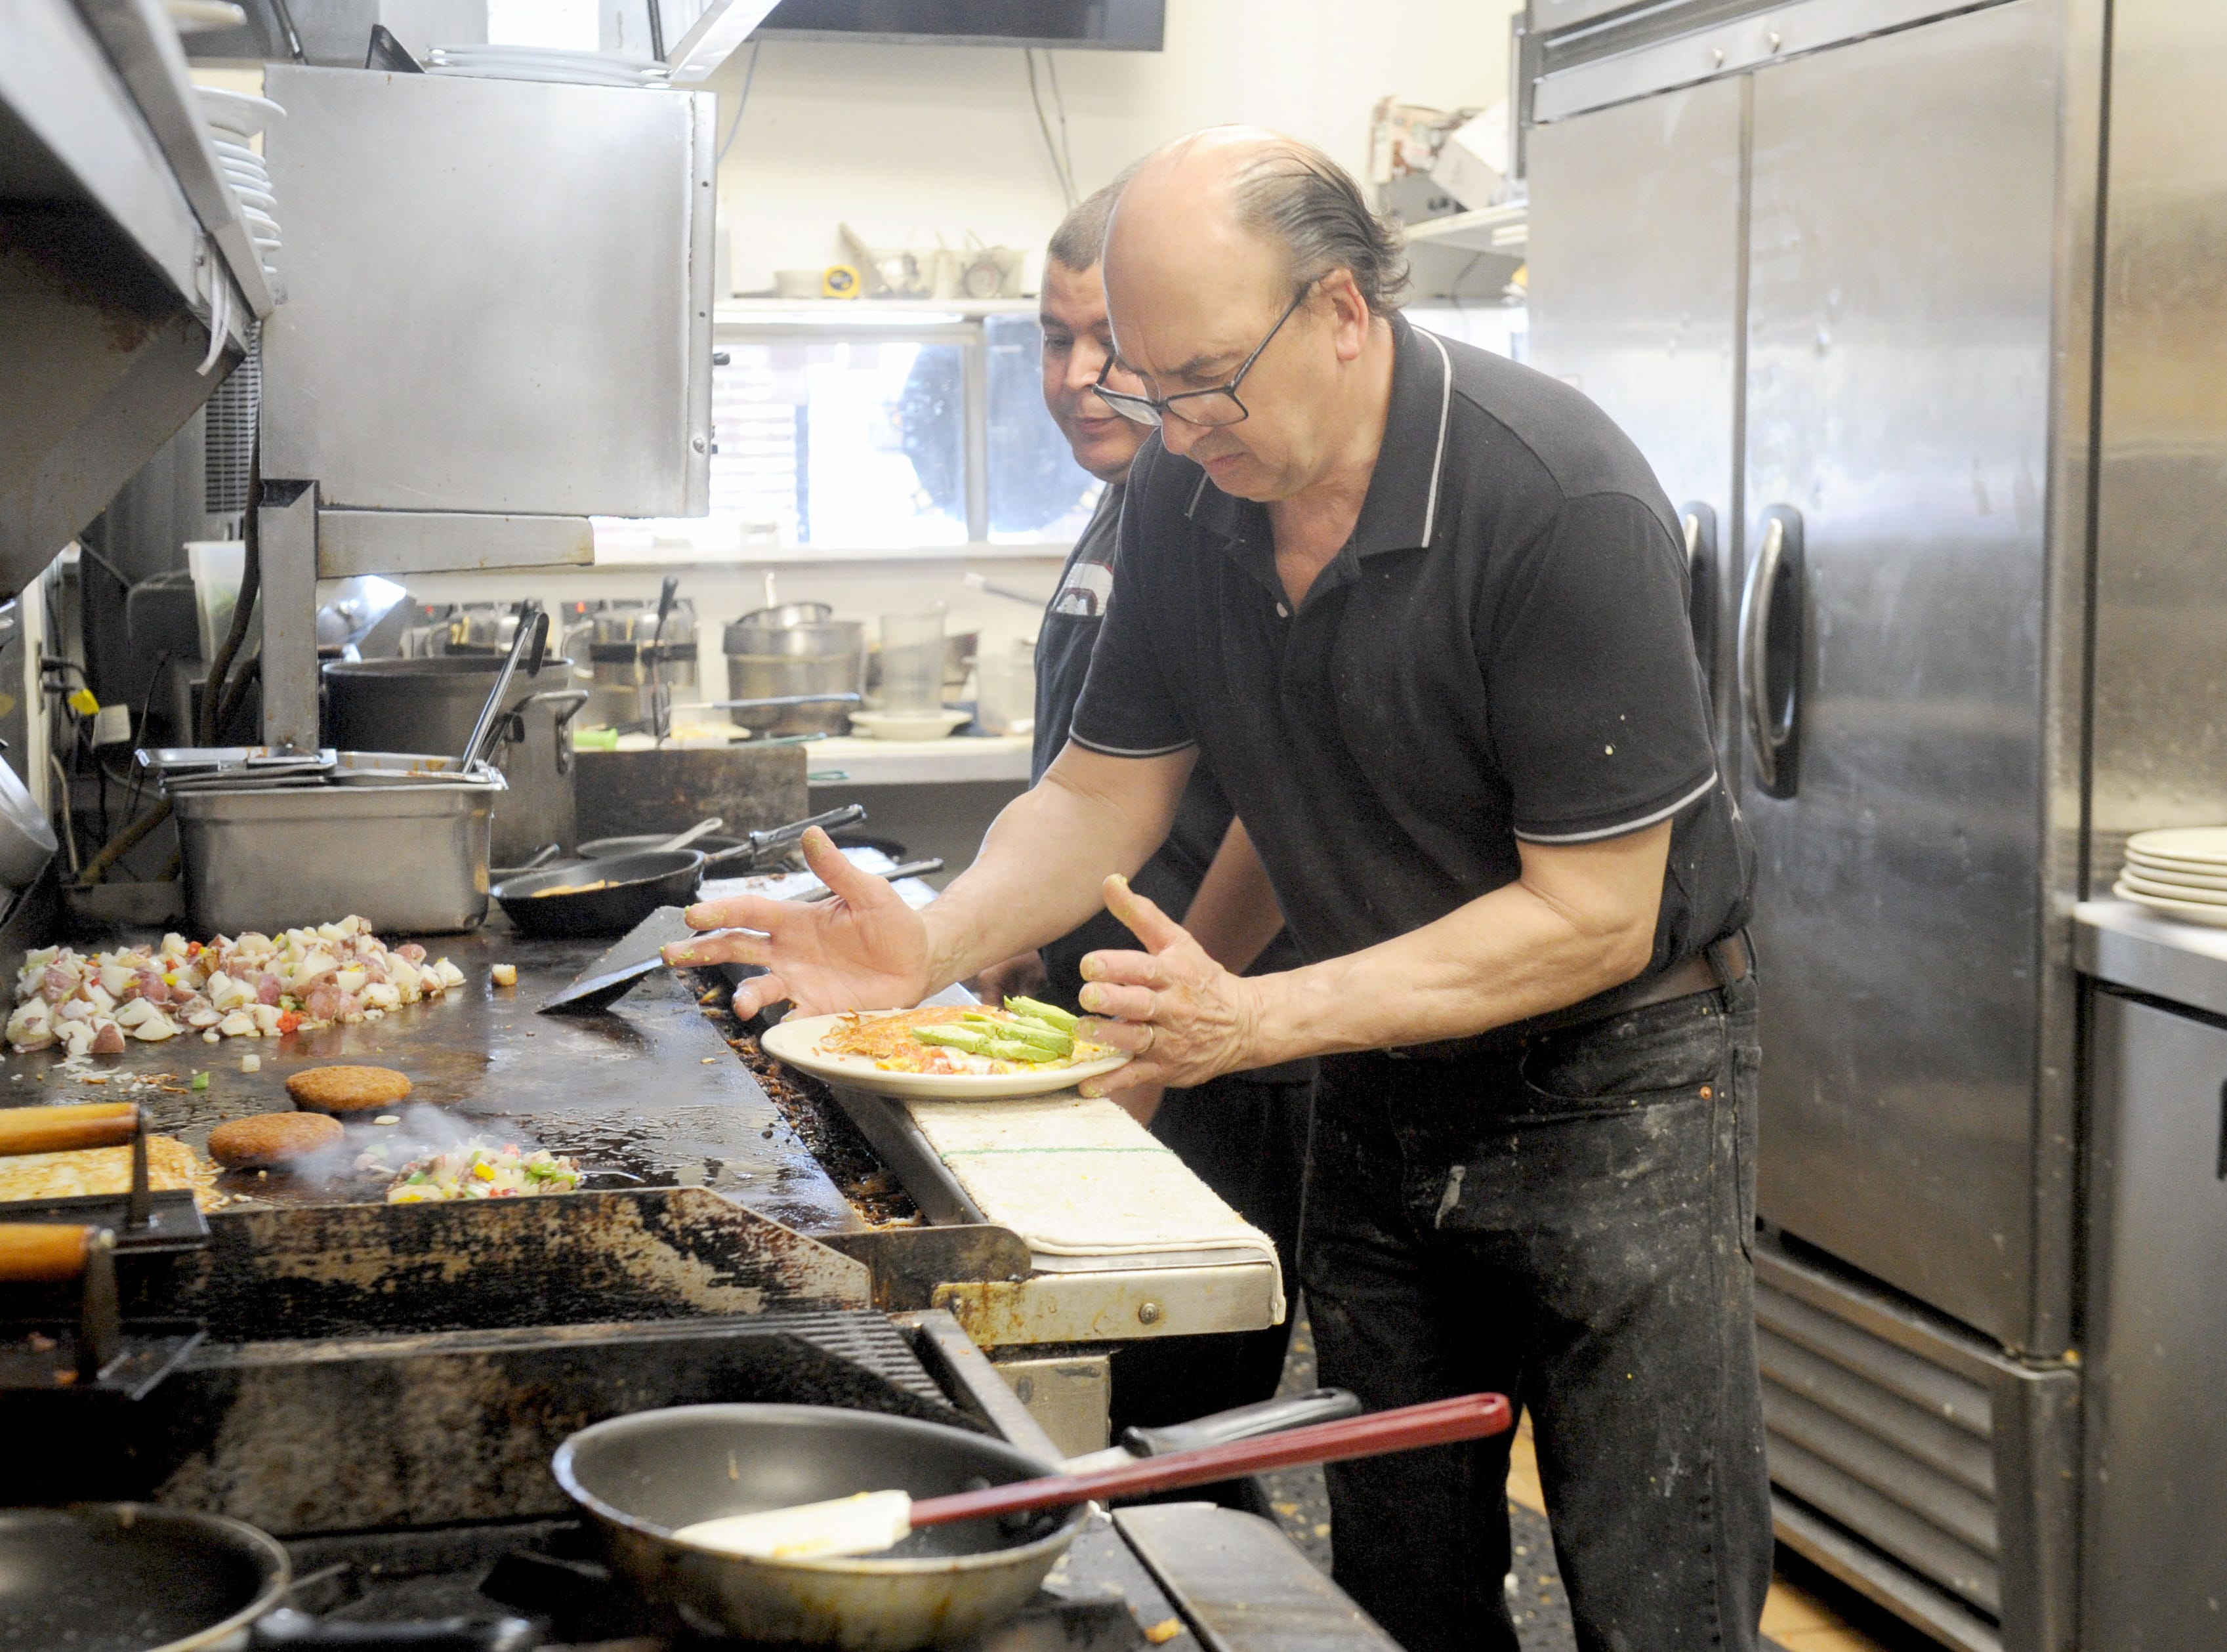 Thomas Fontes, owner and chef of Jessica's Cafe in Camarillo, and Enrique Martinez prepared breakfast meals at the restaurant.